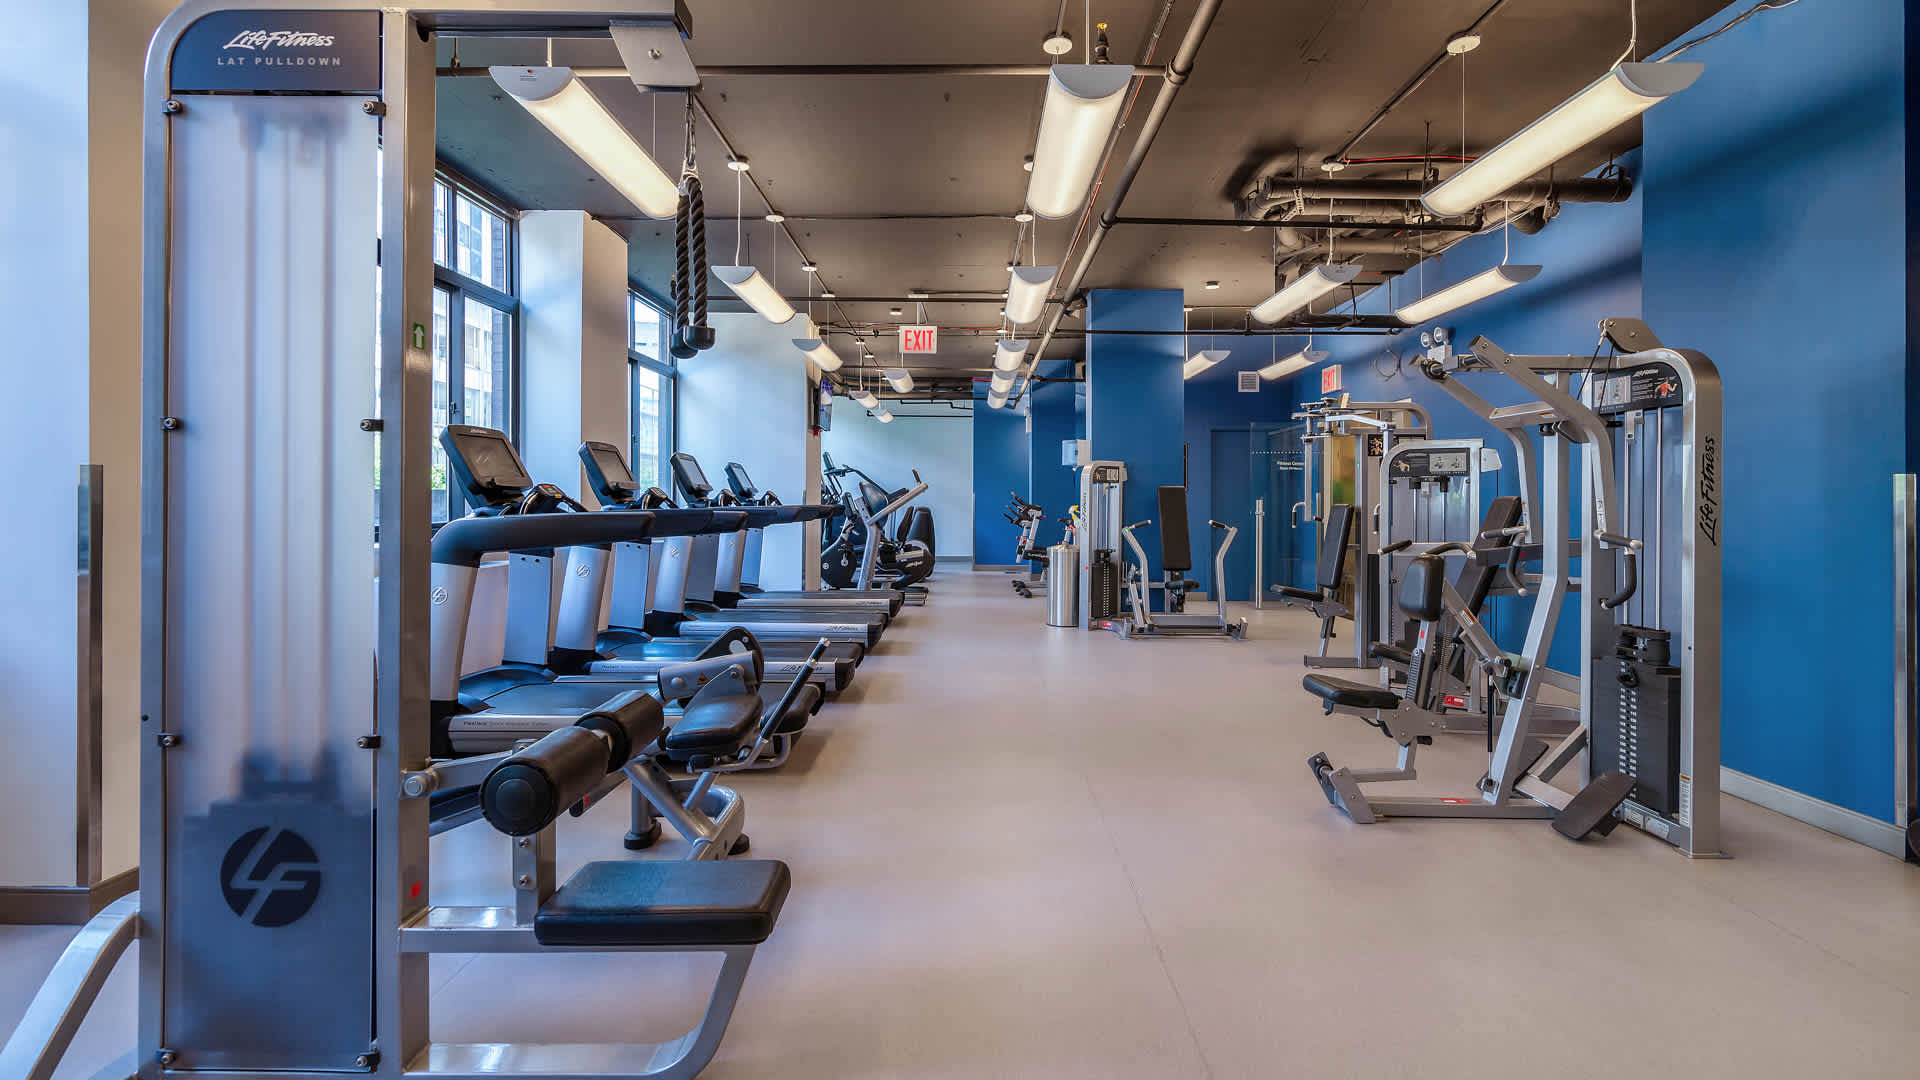 180 montague apartments fitness center